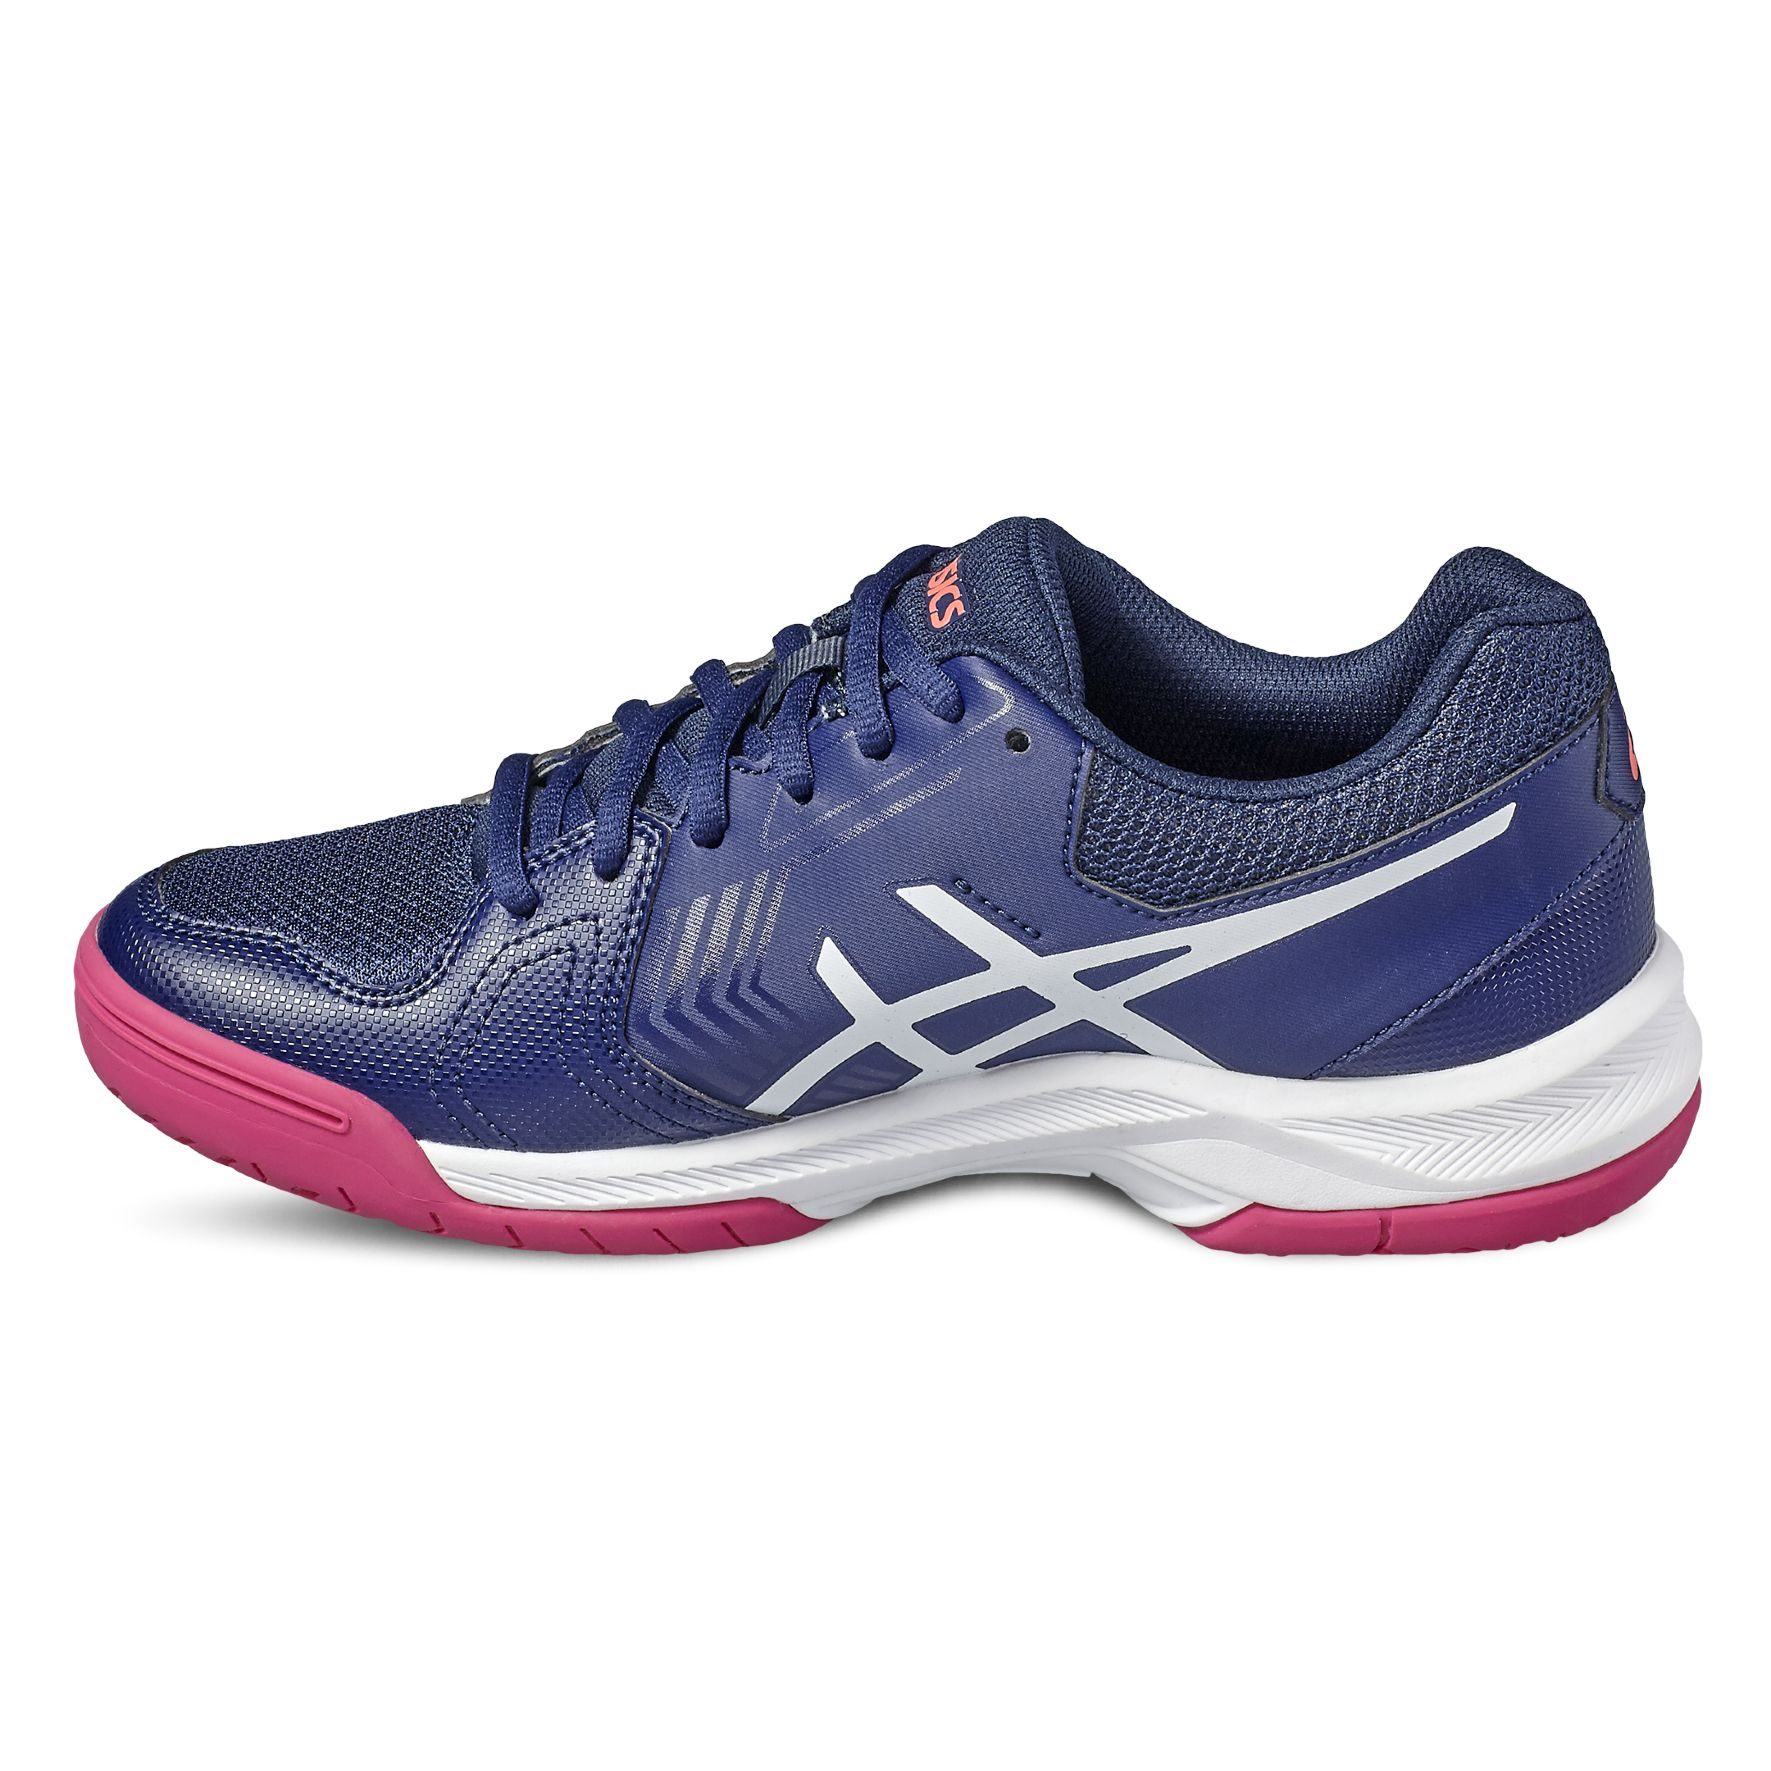 Where Are Asics Tennis Shoes Made